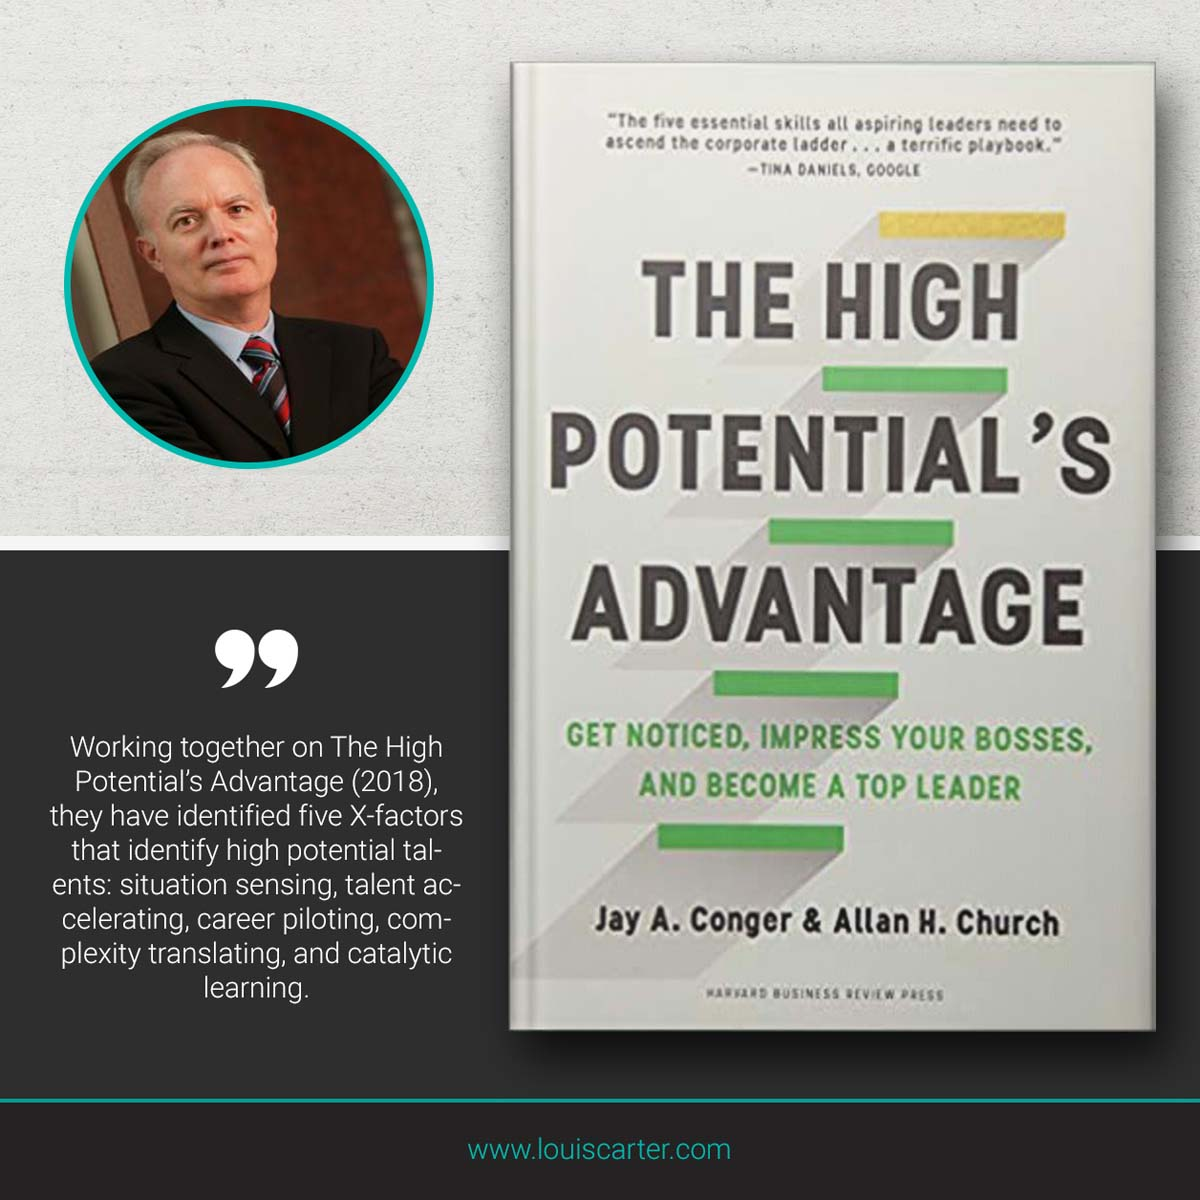 Image of The High Potential's Advantage leadership book by Jay A Conger.